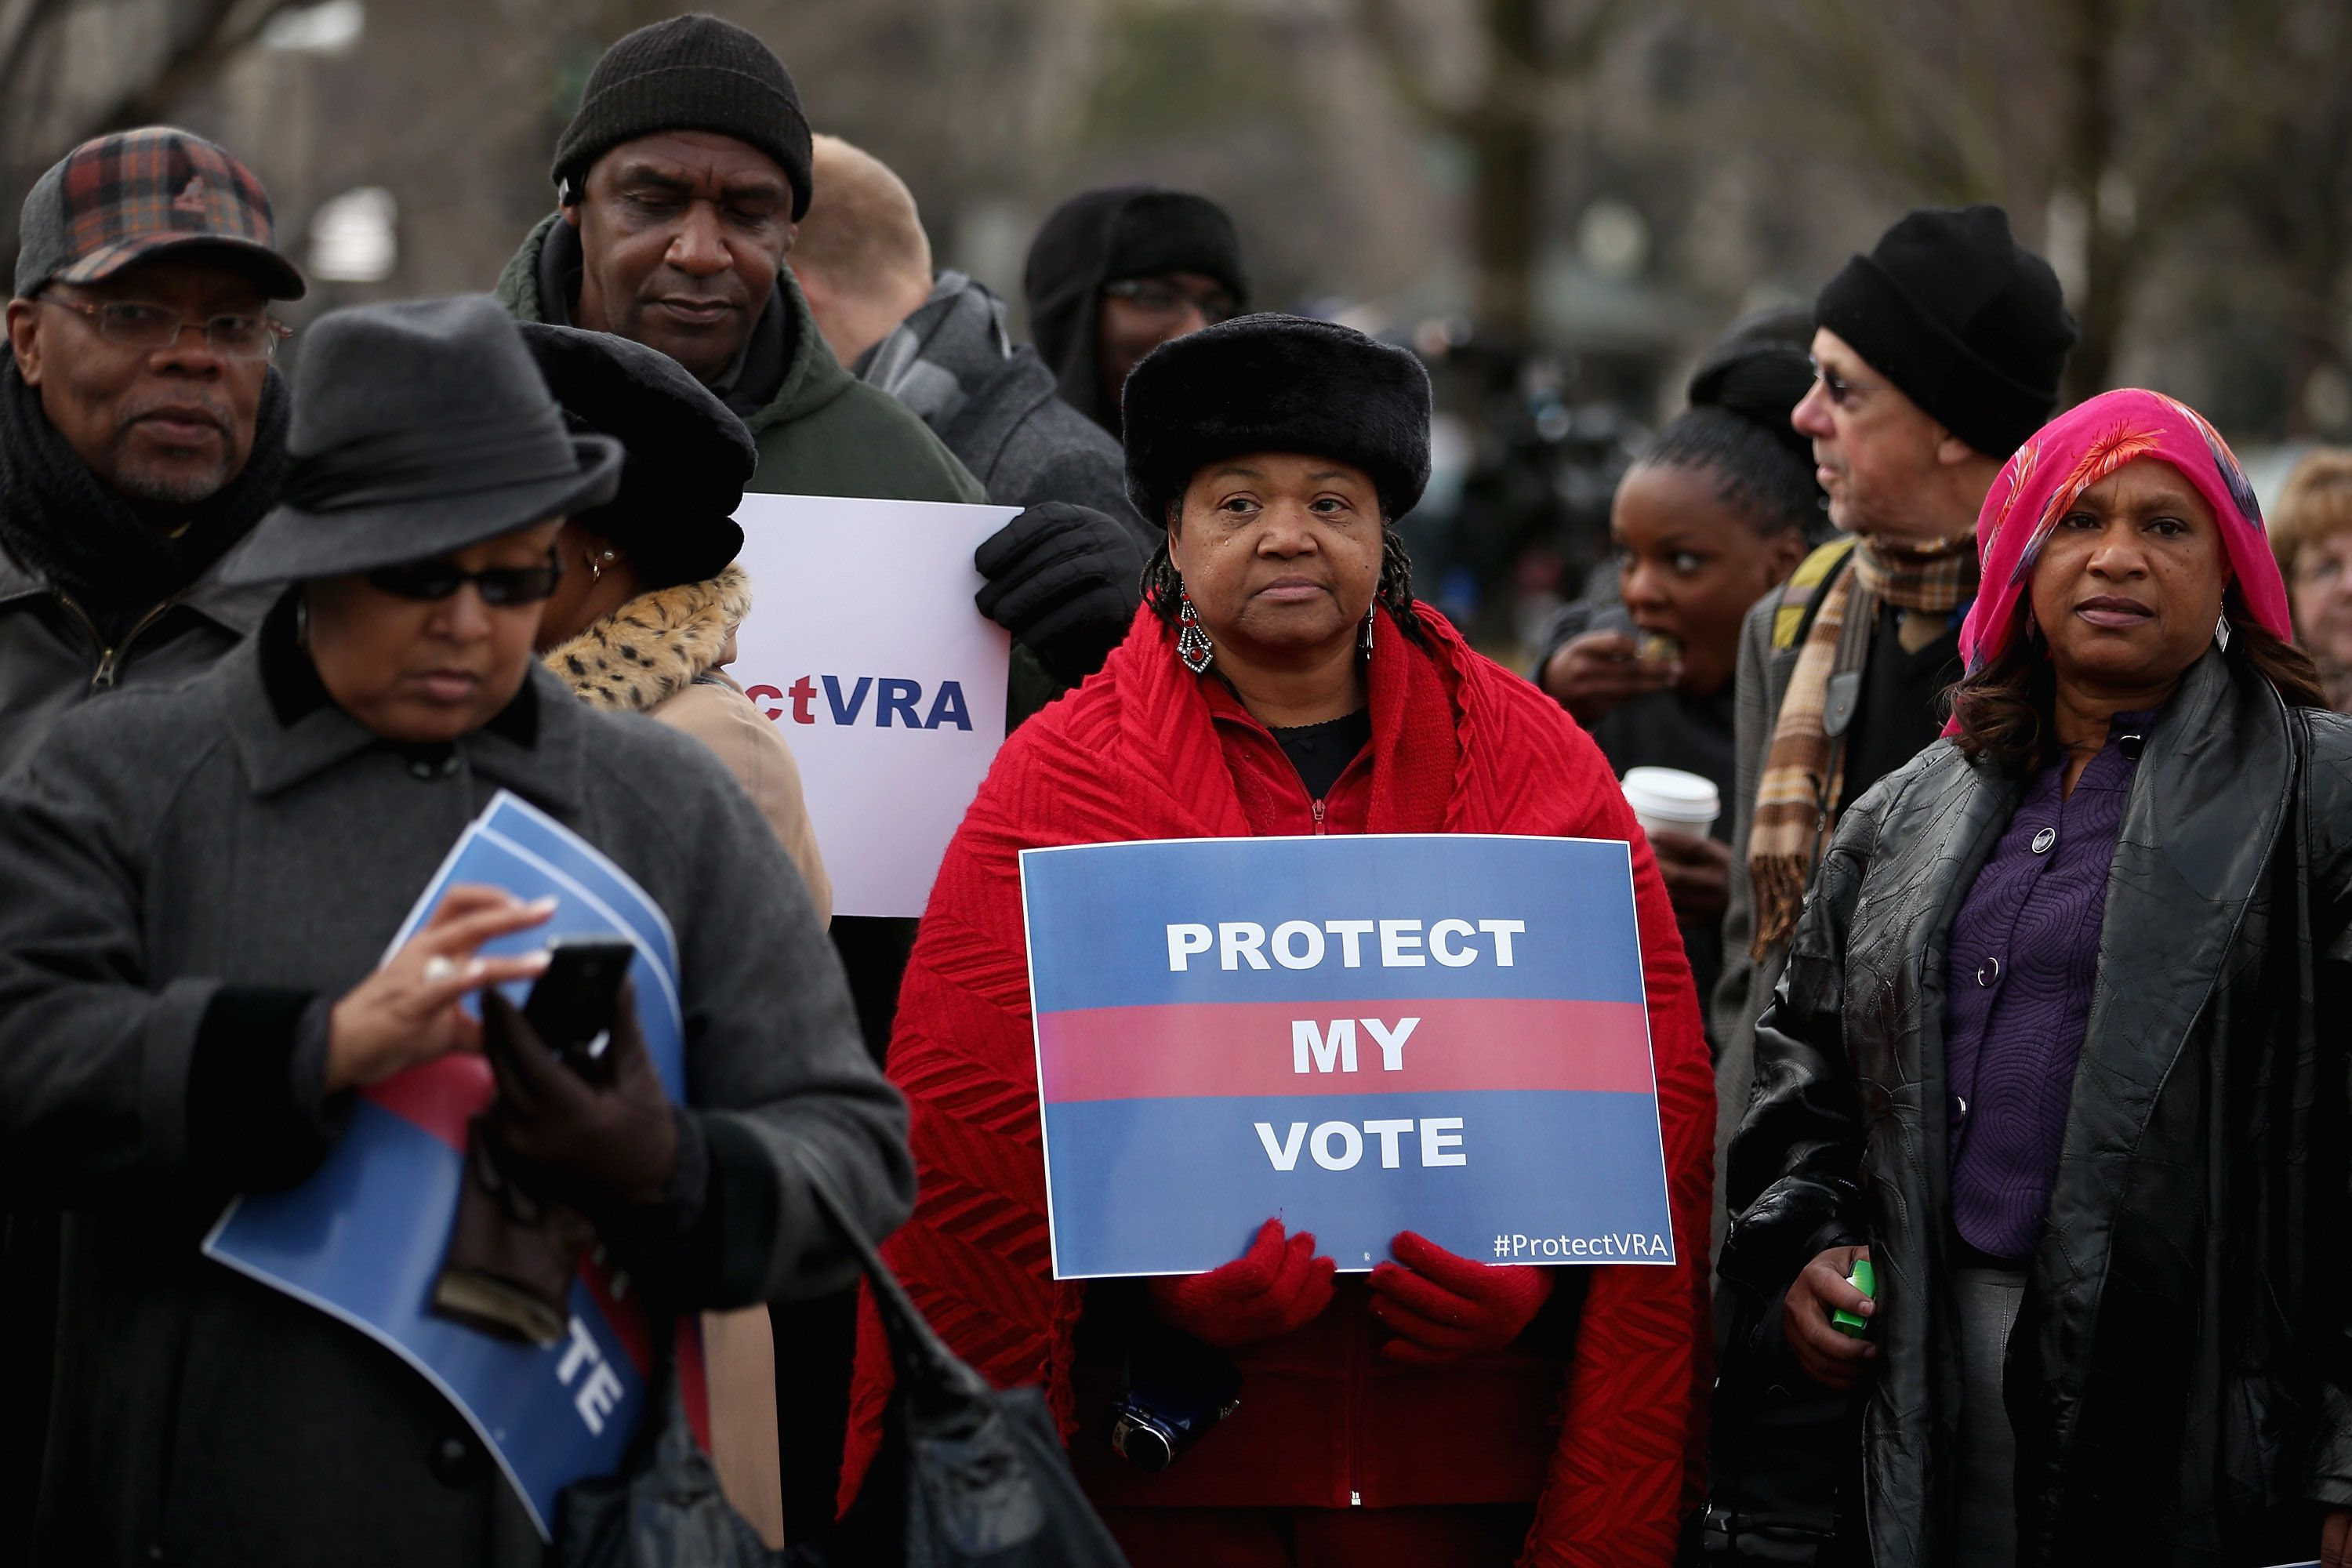 Demonstrators stand outside the U.S. Supreme Court in February 2013 as it hears arguments in the historic Shelby County v. Ho